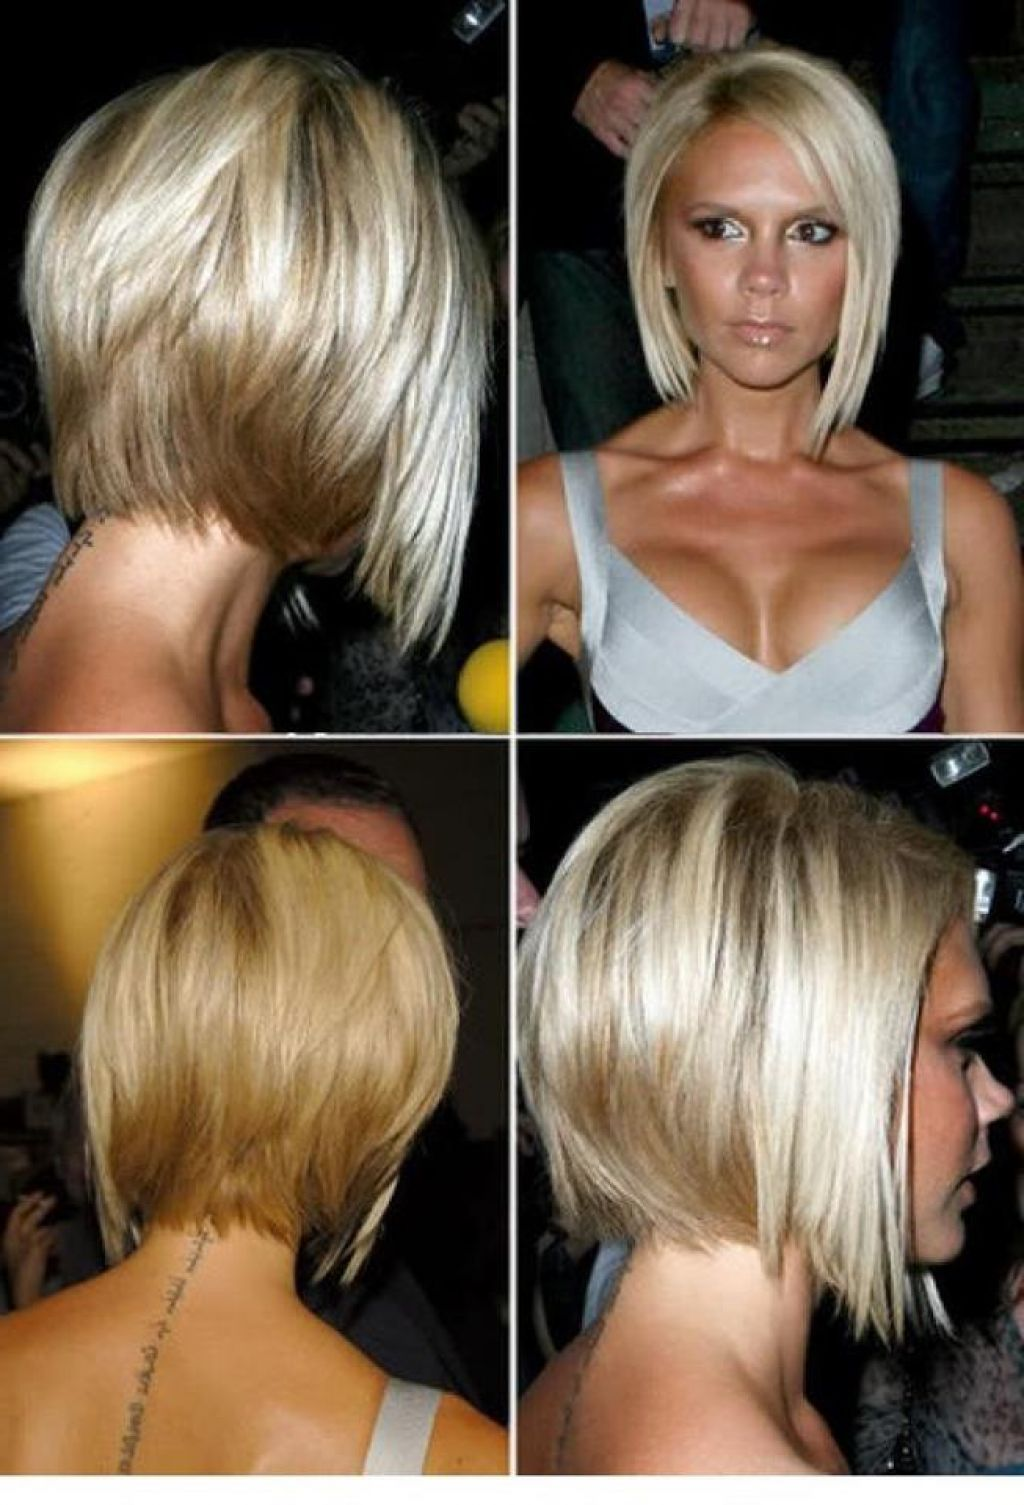 Chin Length Hairstyles Back View Google Search Bob Haircut Back View Stacked Bob Hairstyles Bob Hairstyles